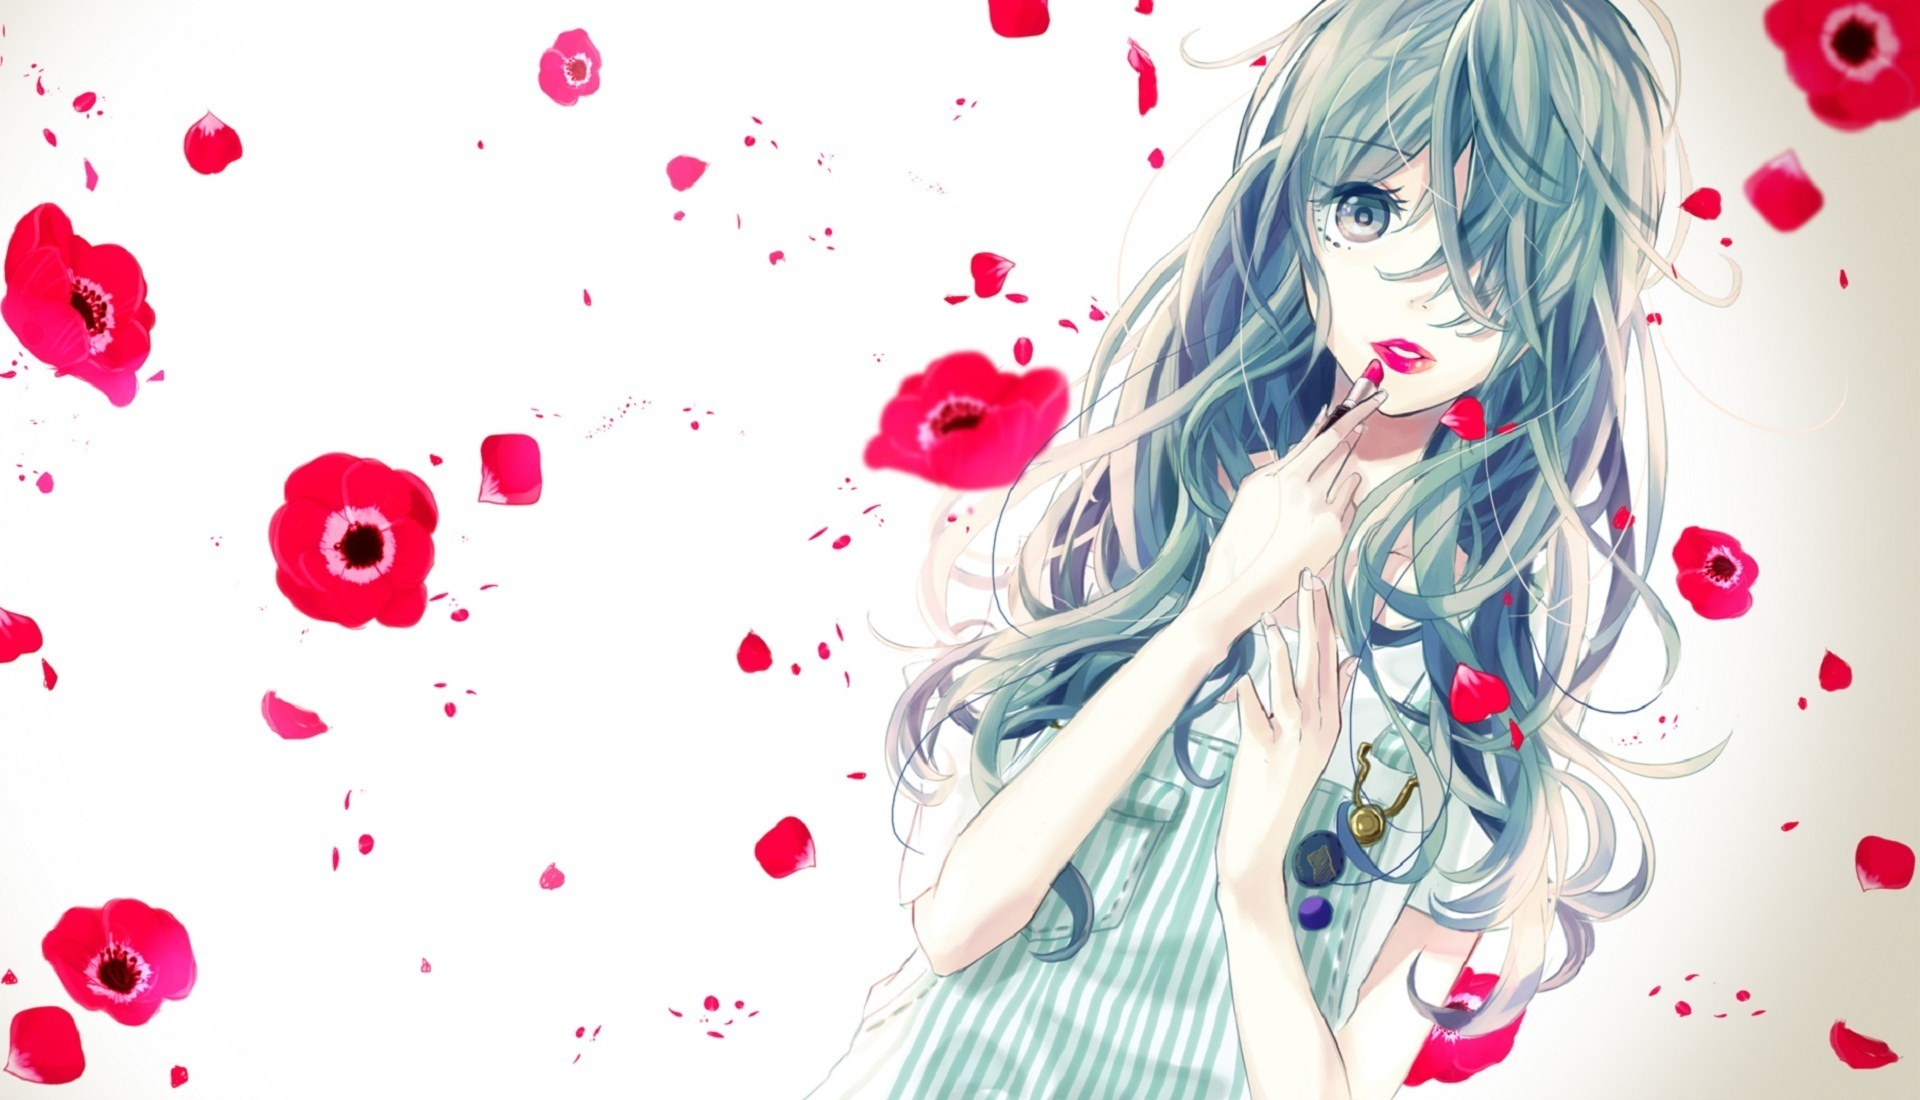 Anime Cute Wallpaper 1920x1100 Anime Cute 1920x1100